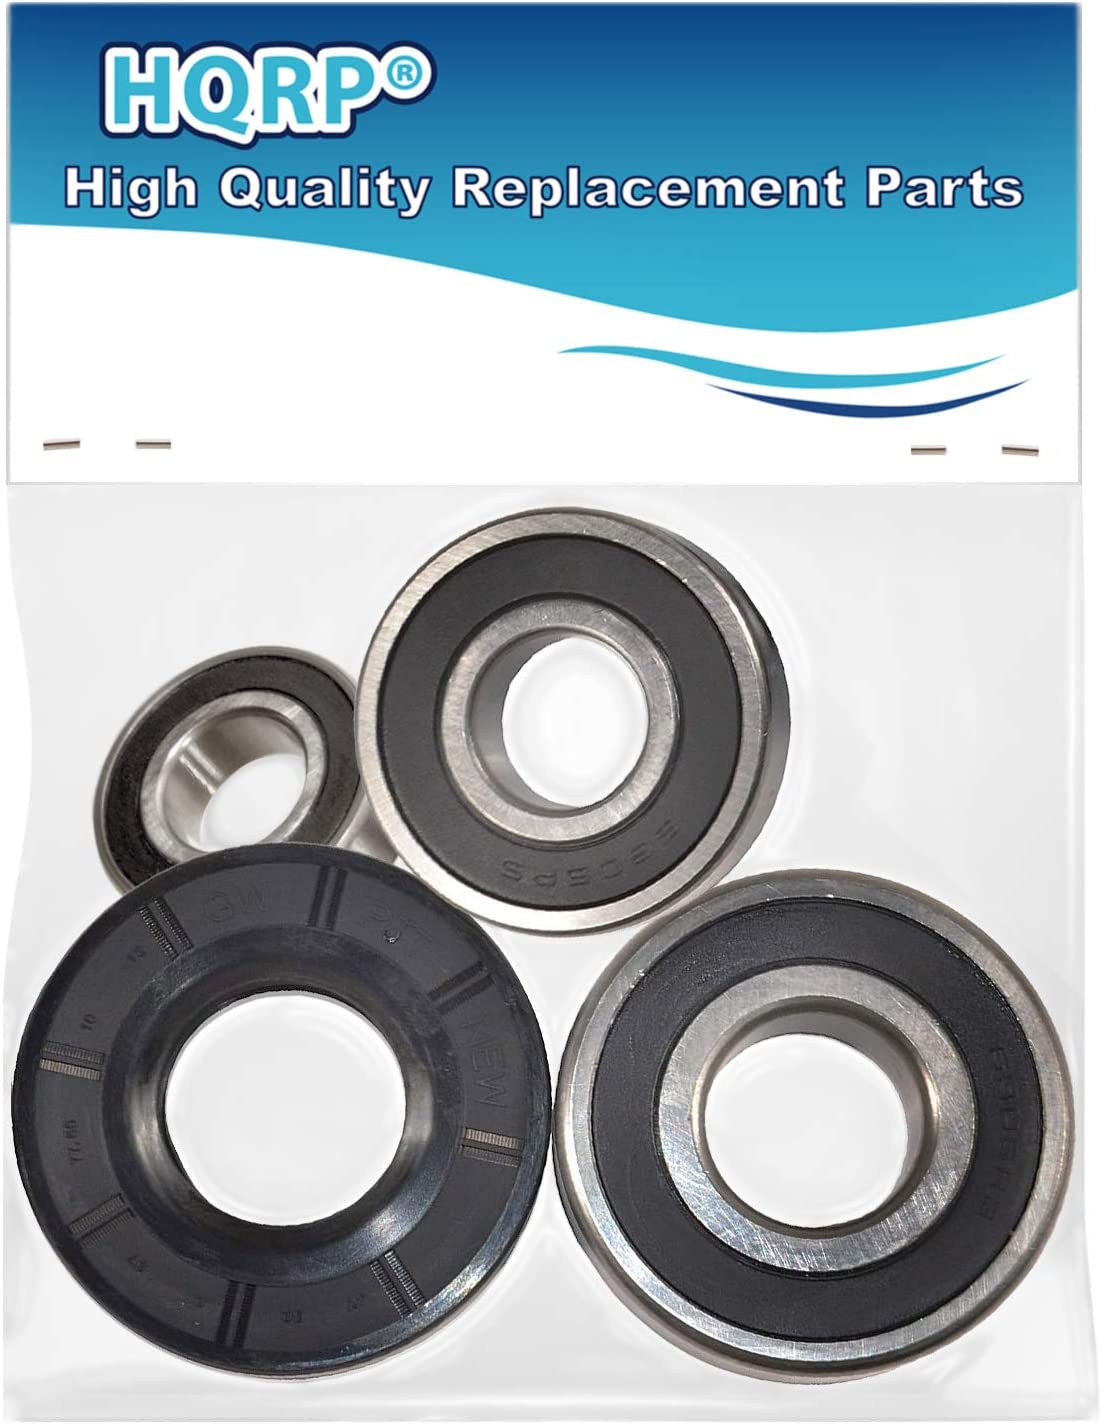 HQRP Bearing and Seal Kit works with Whirlpool WFW9200SQ00 WFW9200SQ01 WFW9200SQ02 WFW9200SQ03 WFW9200SQ04 WFW9300VU02 Front Load Washer Tub